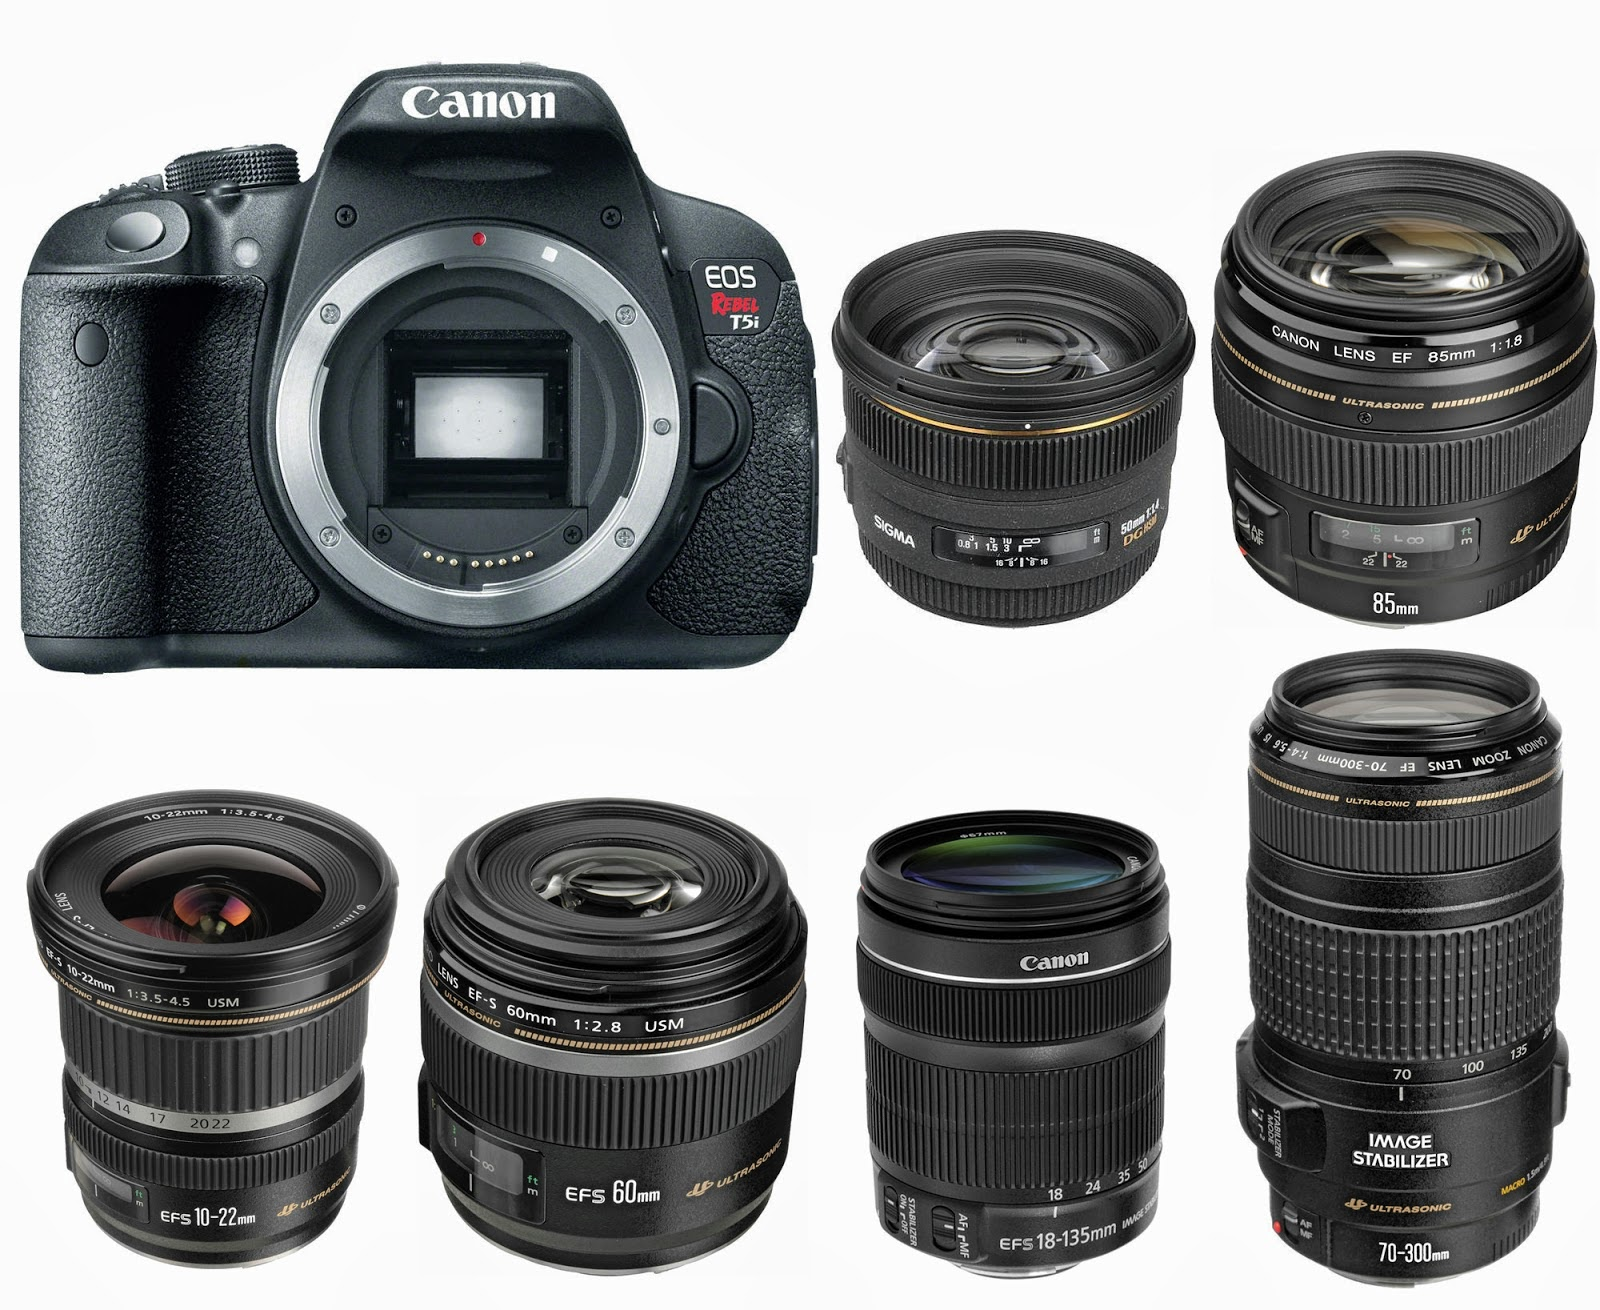 Canon EOS 700D, Rebel T5i, entry level DSLR, creative filters, Full HD video, Canon vs Nikon, new DSLR camera, vary angle LCD